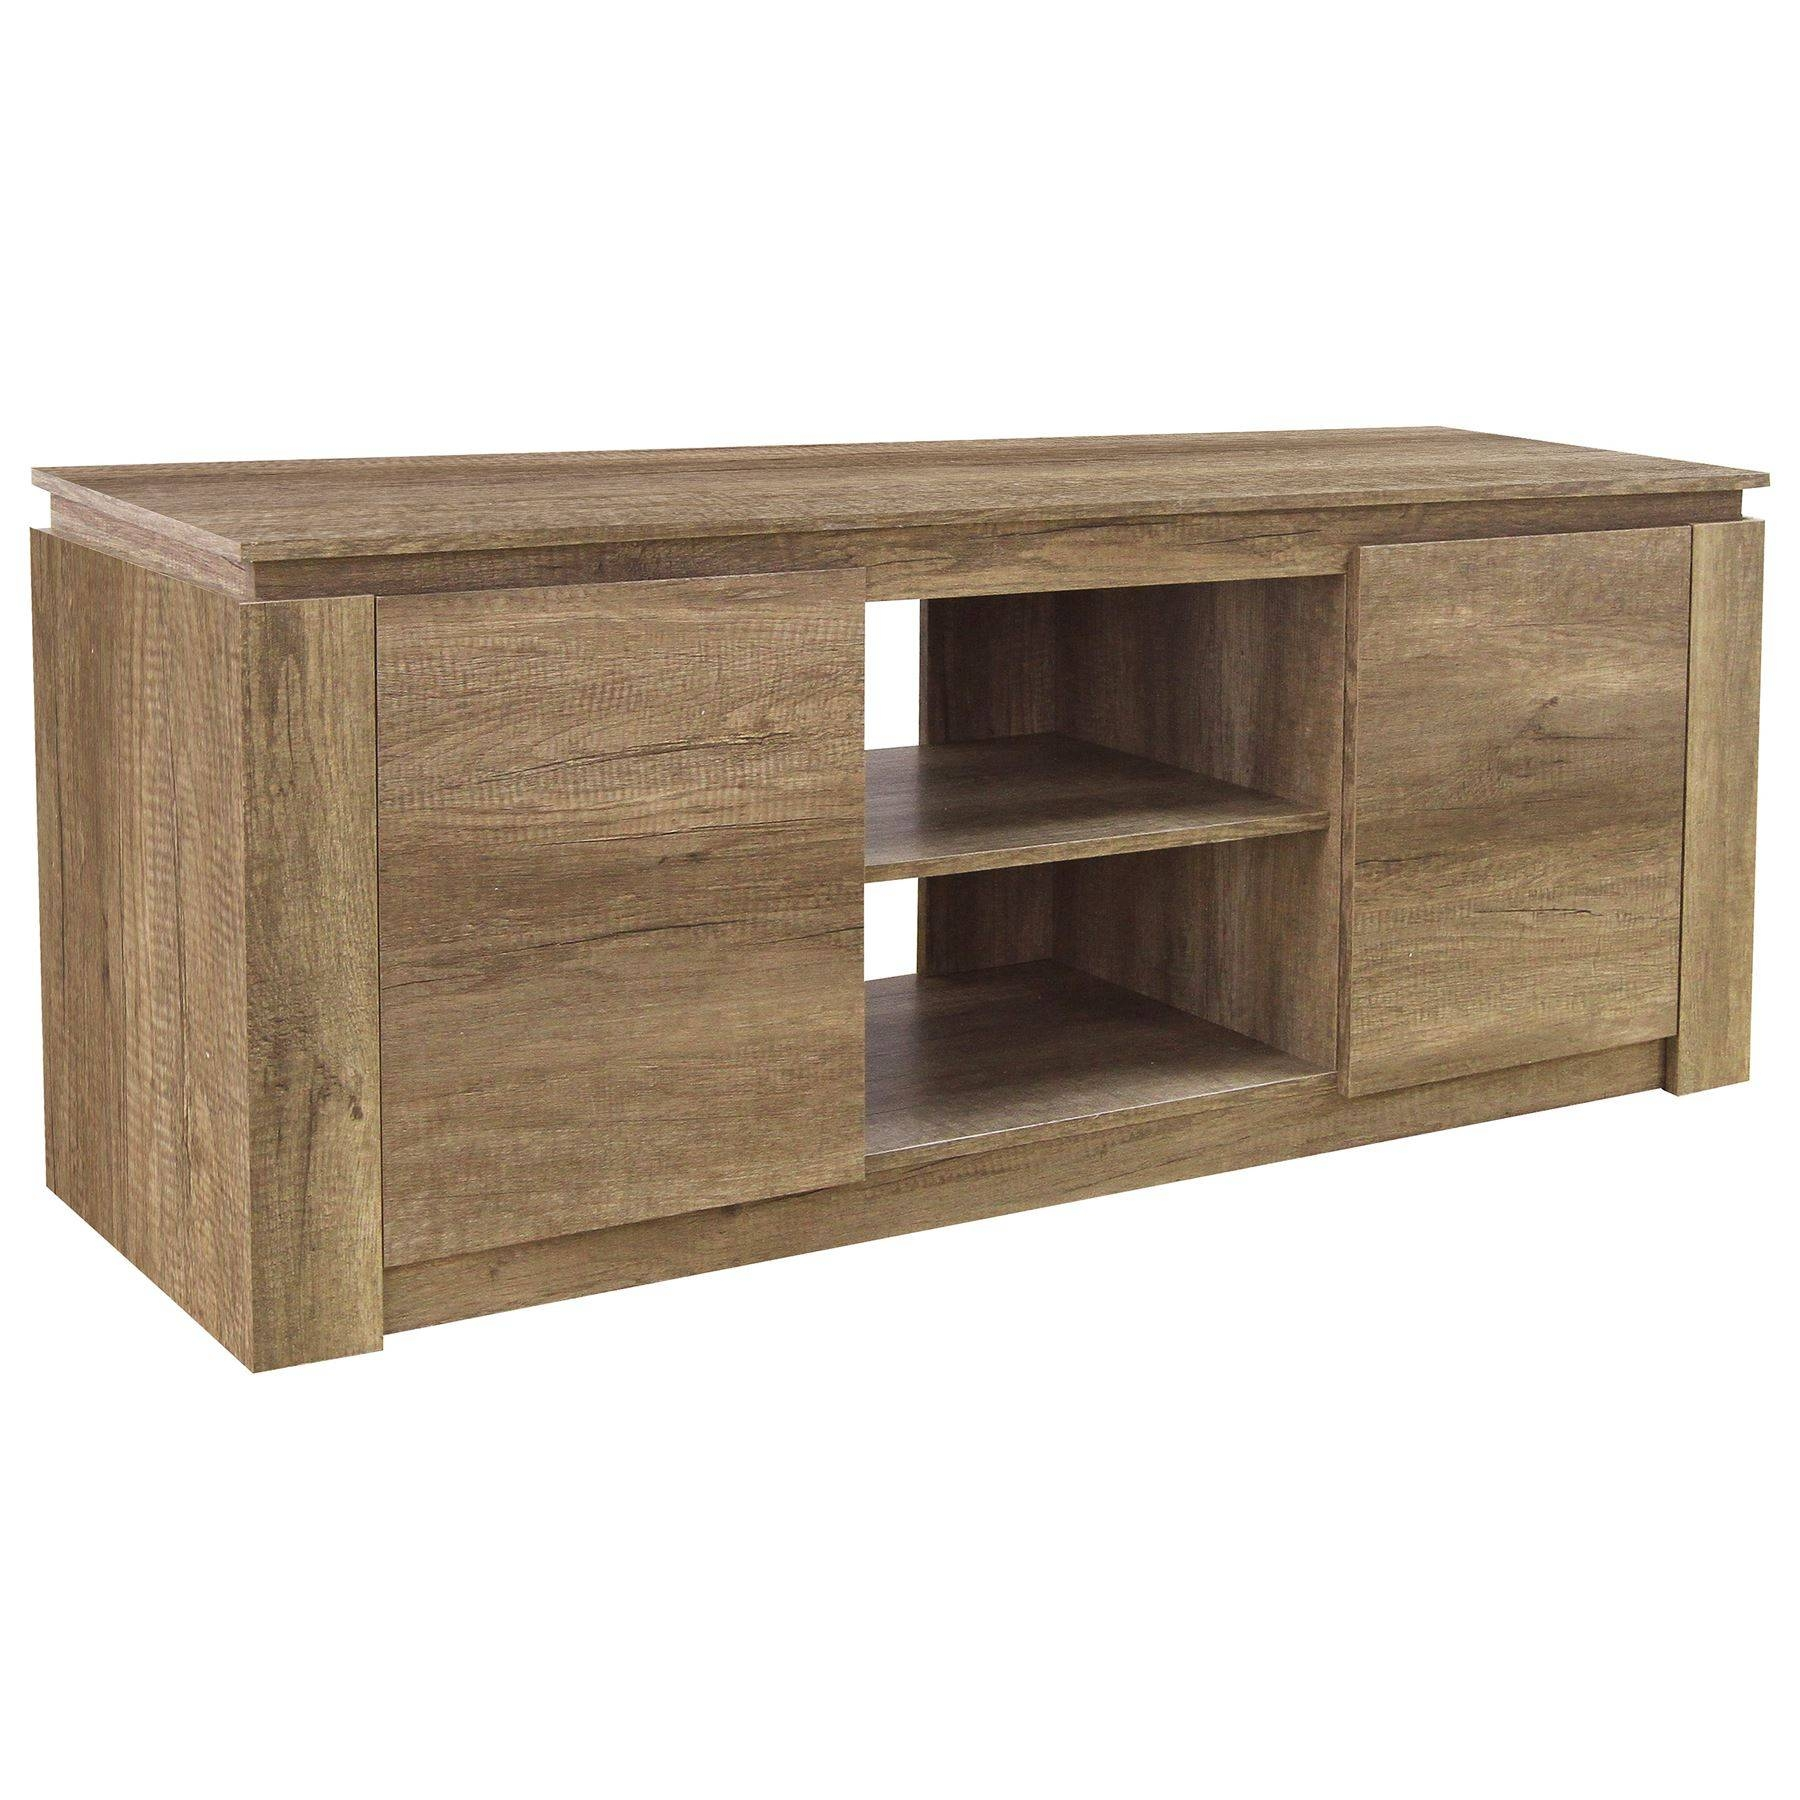 Oak Bookshelf Bookside Tv Unit Stand Coffee Lamp Table Sideboard In Sideboards And Tv Stands (View 19 of 30)